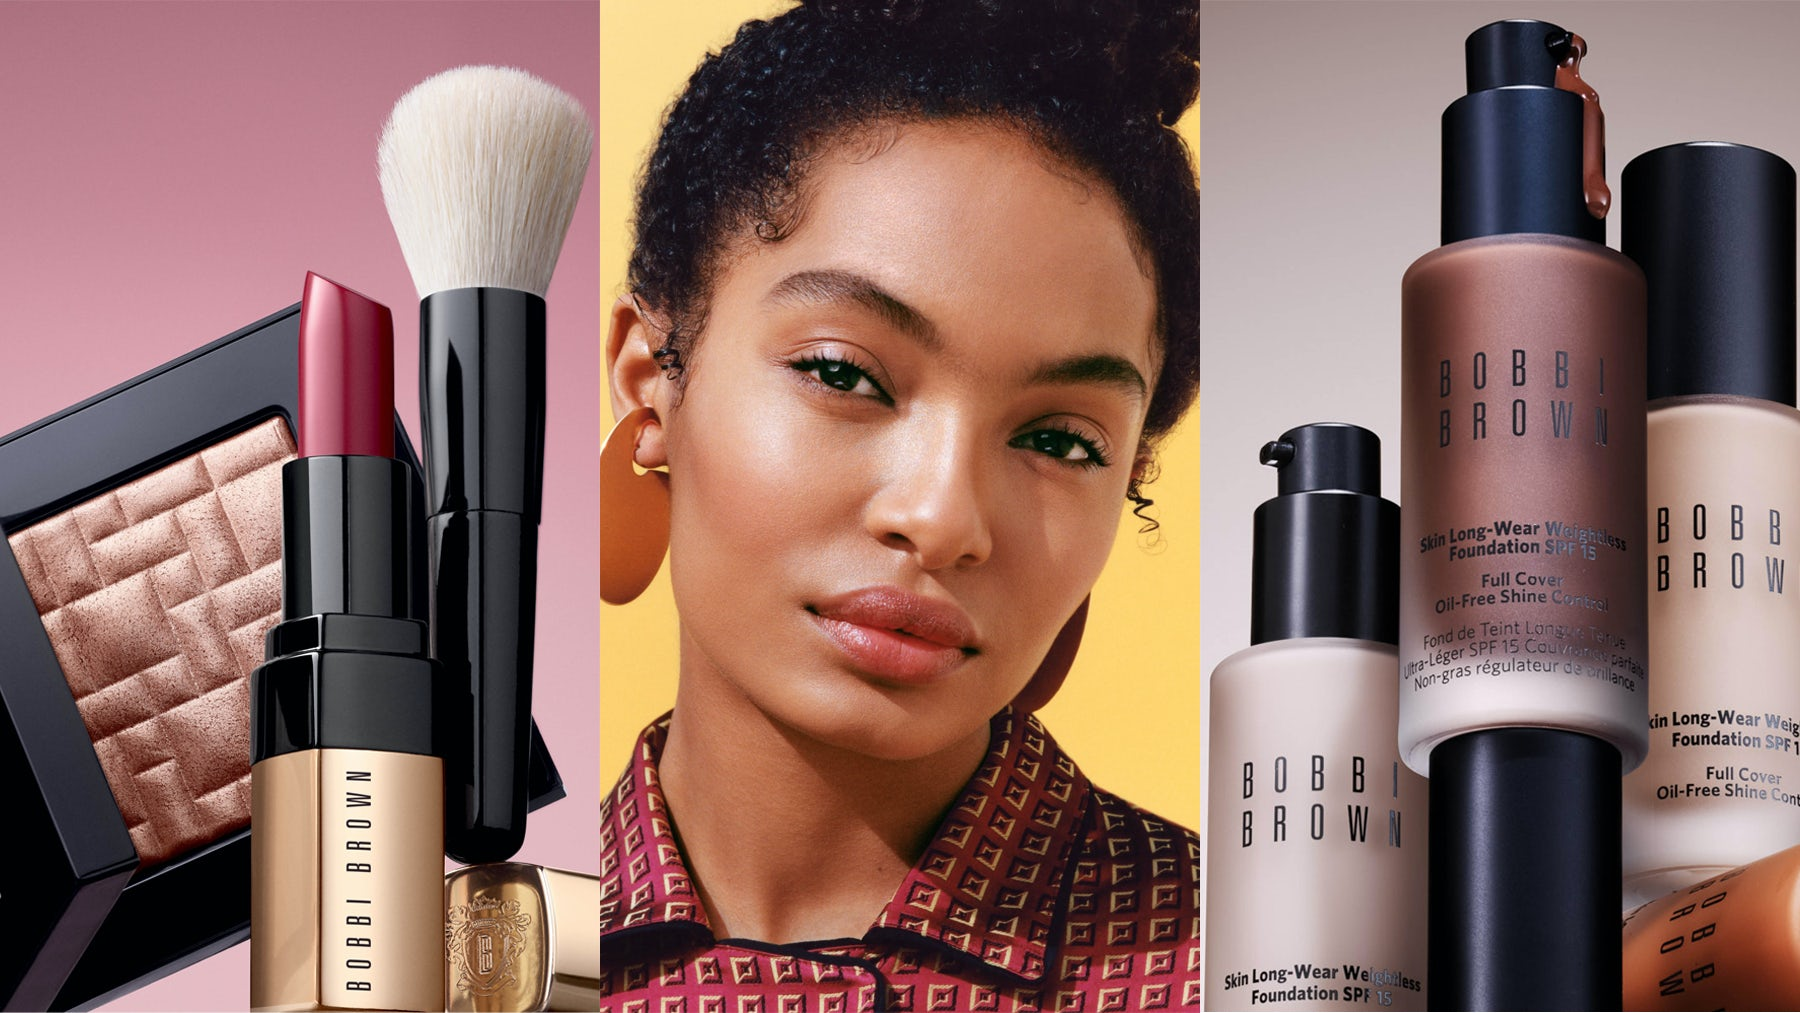 Is There a Bobbi Brown After Bobbi Brown?